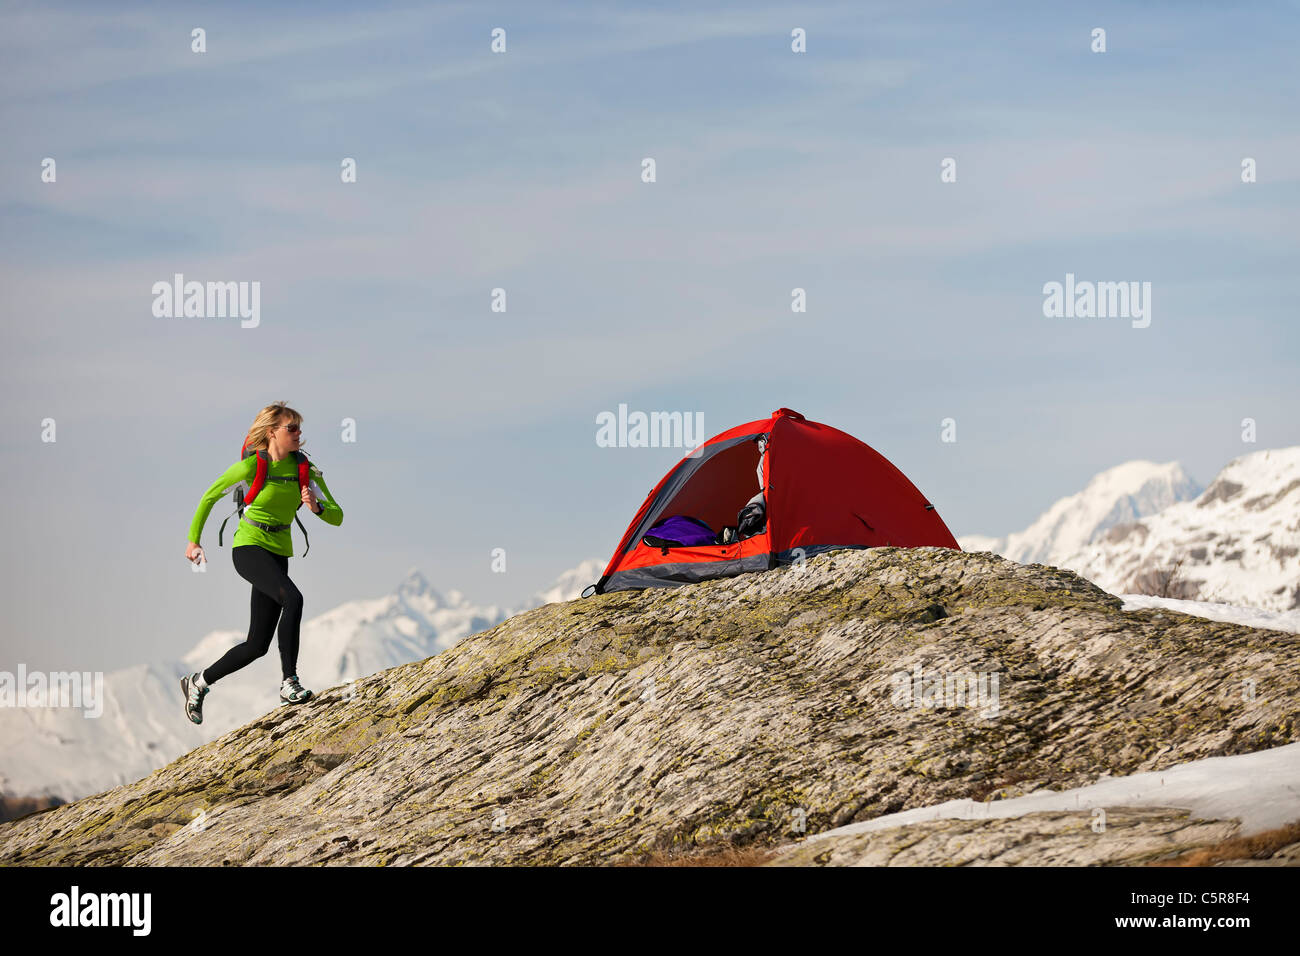 A woman runs back to her tent in high altitude mountains. - Stock Image